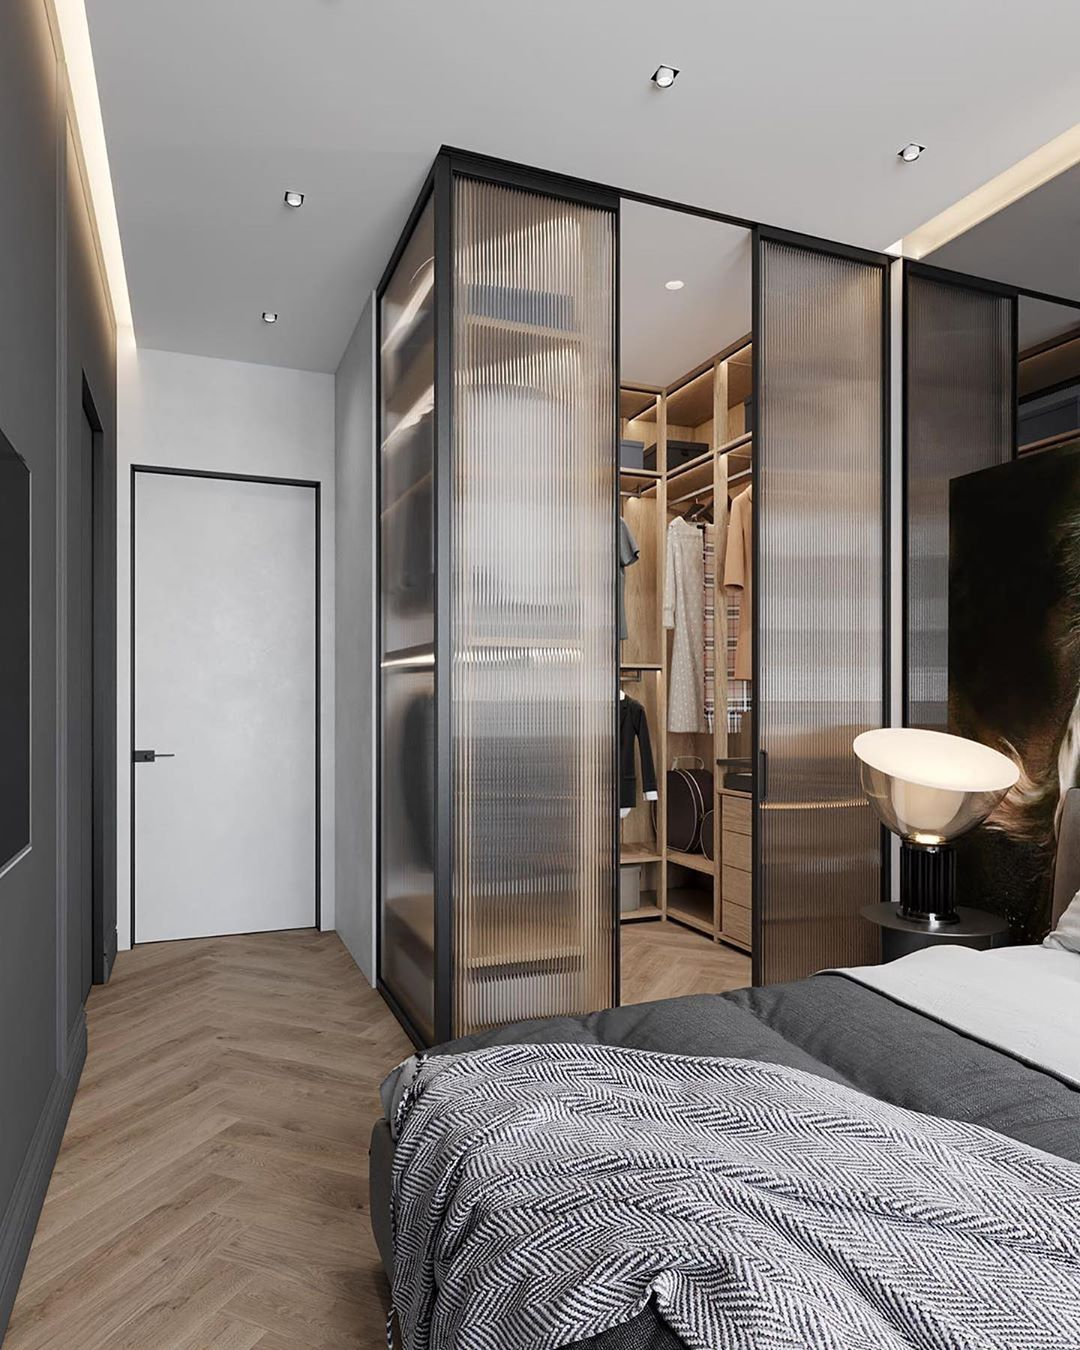 Luxury Buildings Interiors On Instagram Interior Goals Tag Someone Who D Love This Designed By D In 2020 Neutral Bedroom Design Bedroom Design House Interior